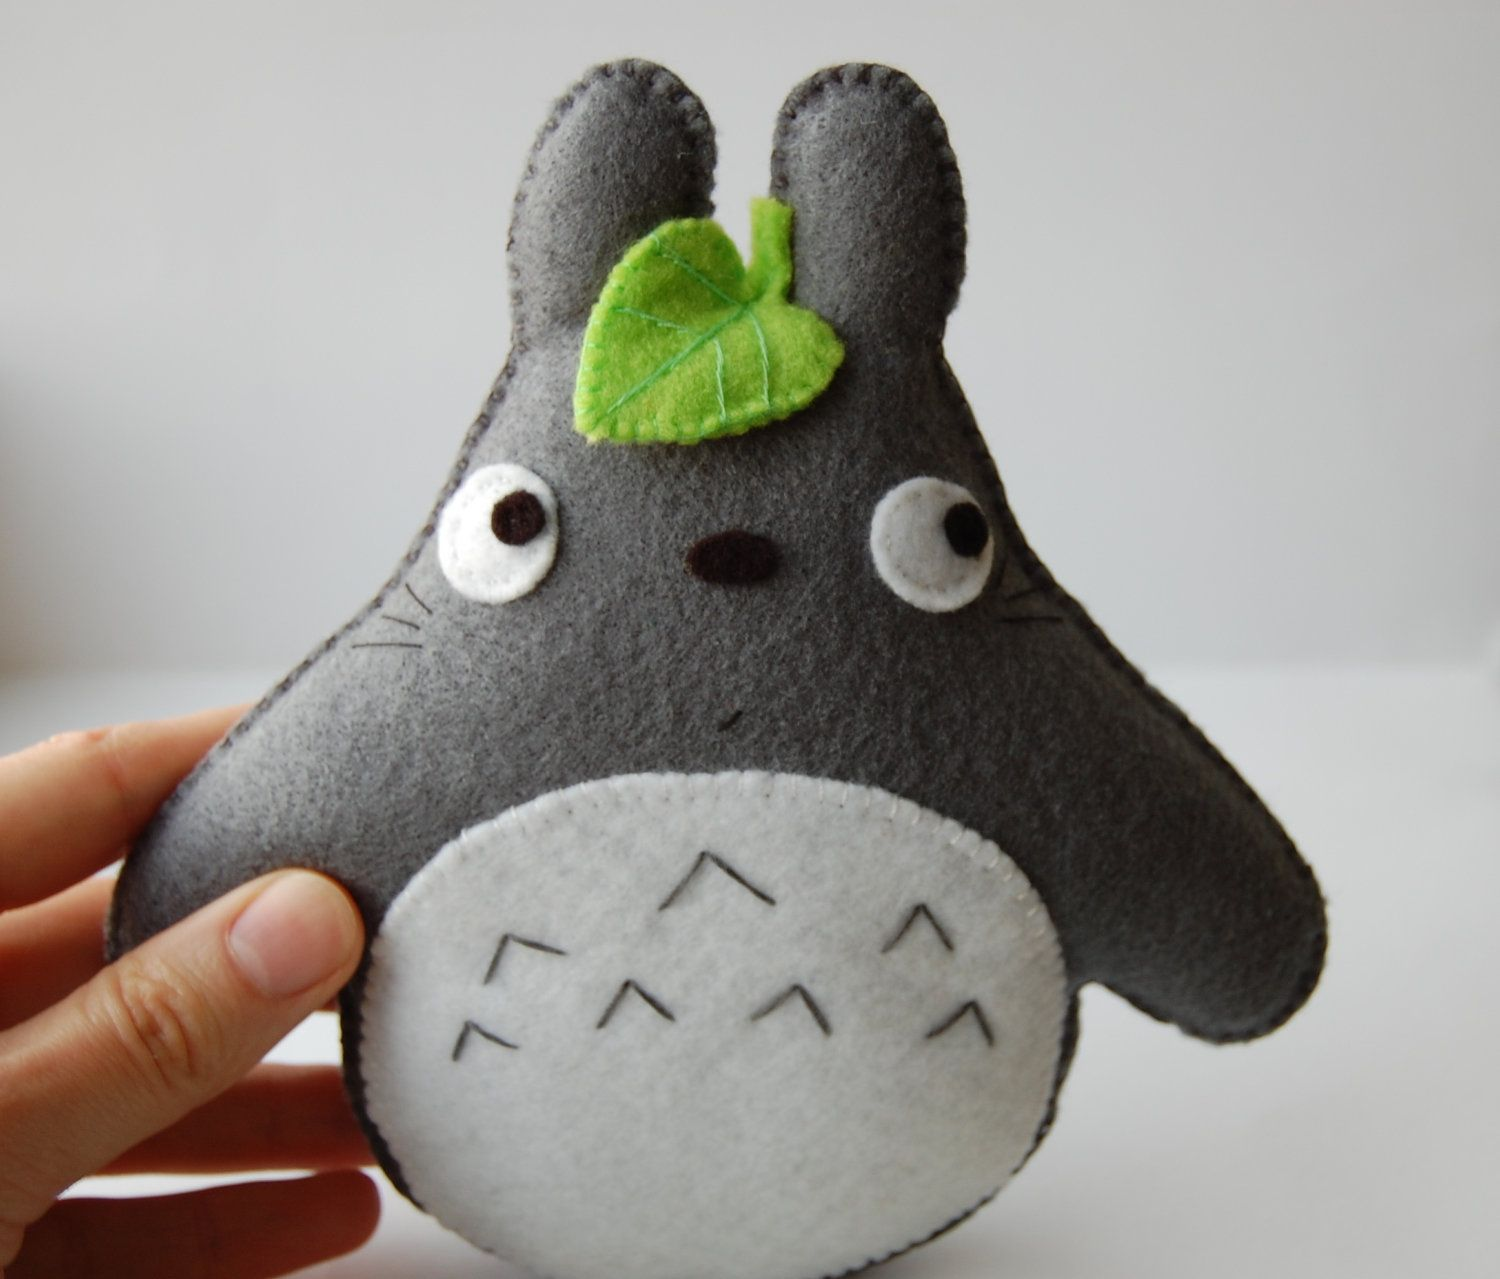 cute felt plushies | Felt crafts diy, Felt crafts, Geek crafts